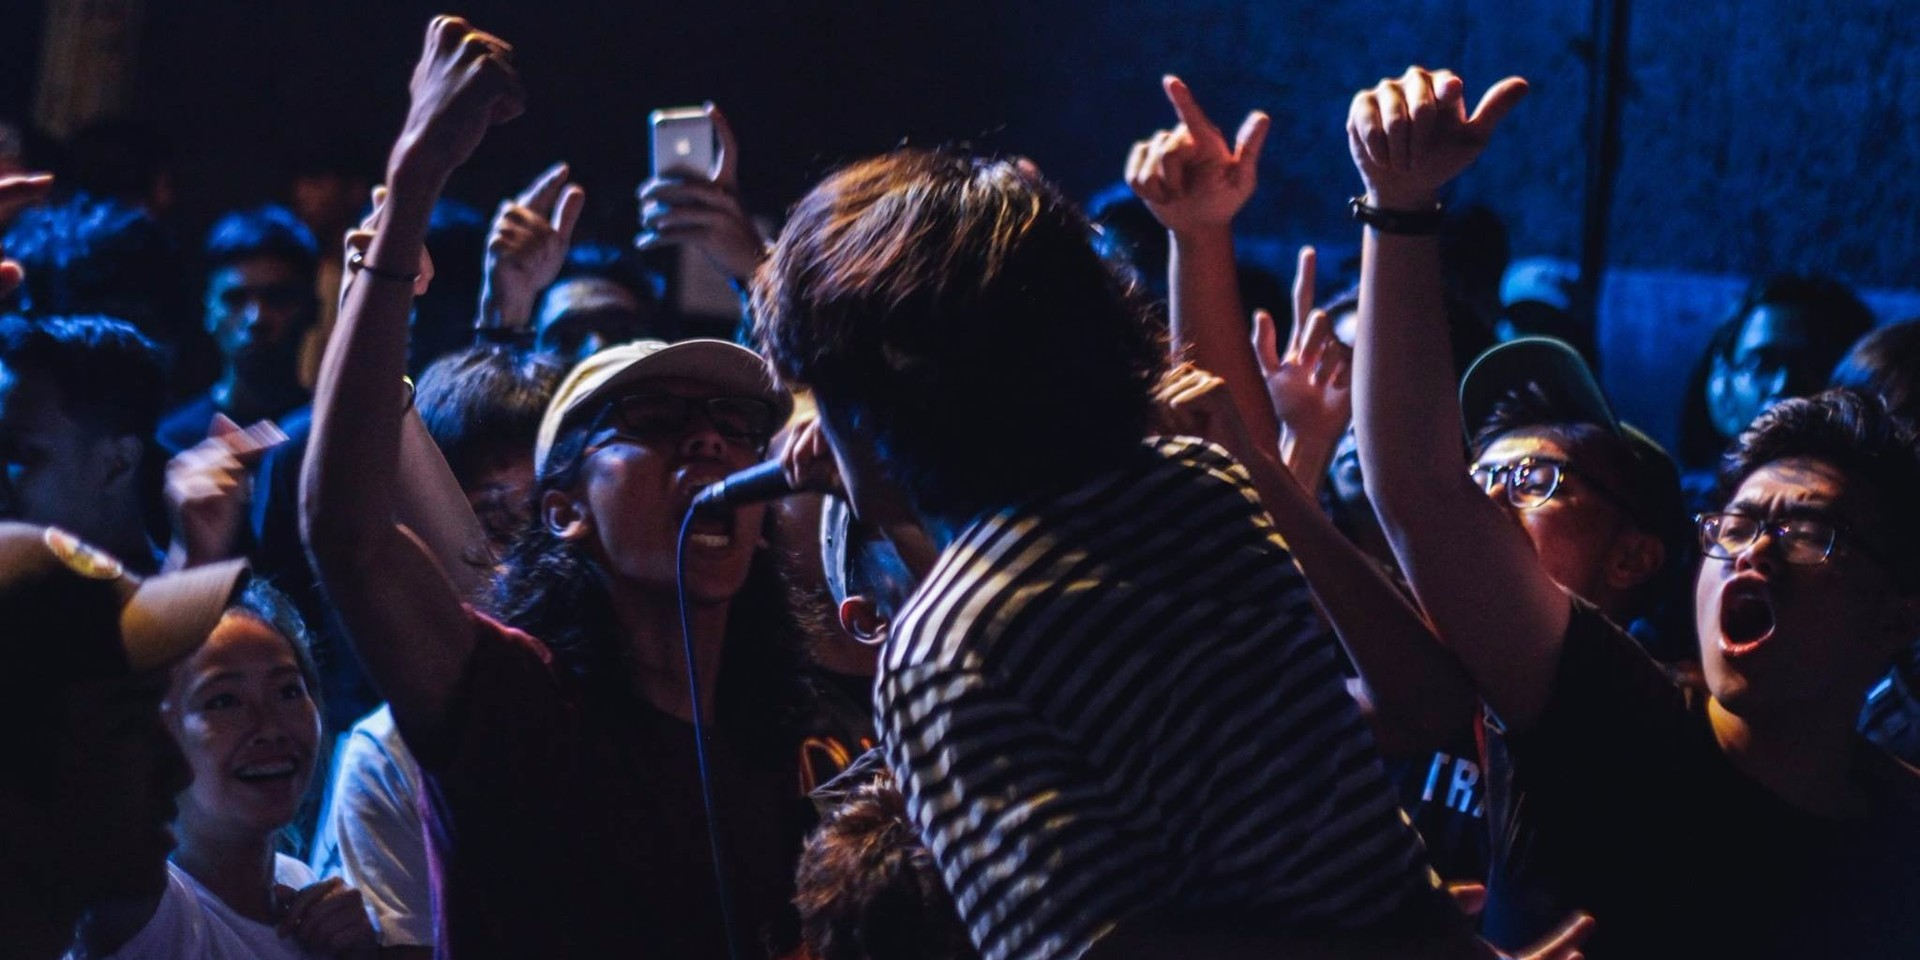 A Not So Dangerous Fest showcases melodic hardcore bands from Singapore and Malaysia